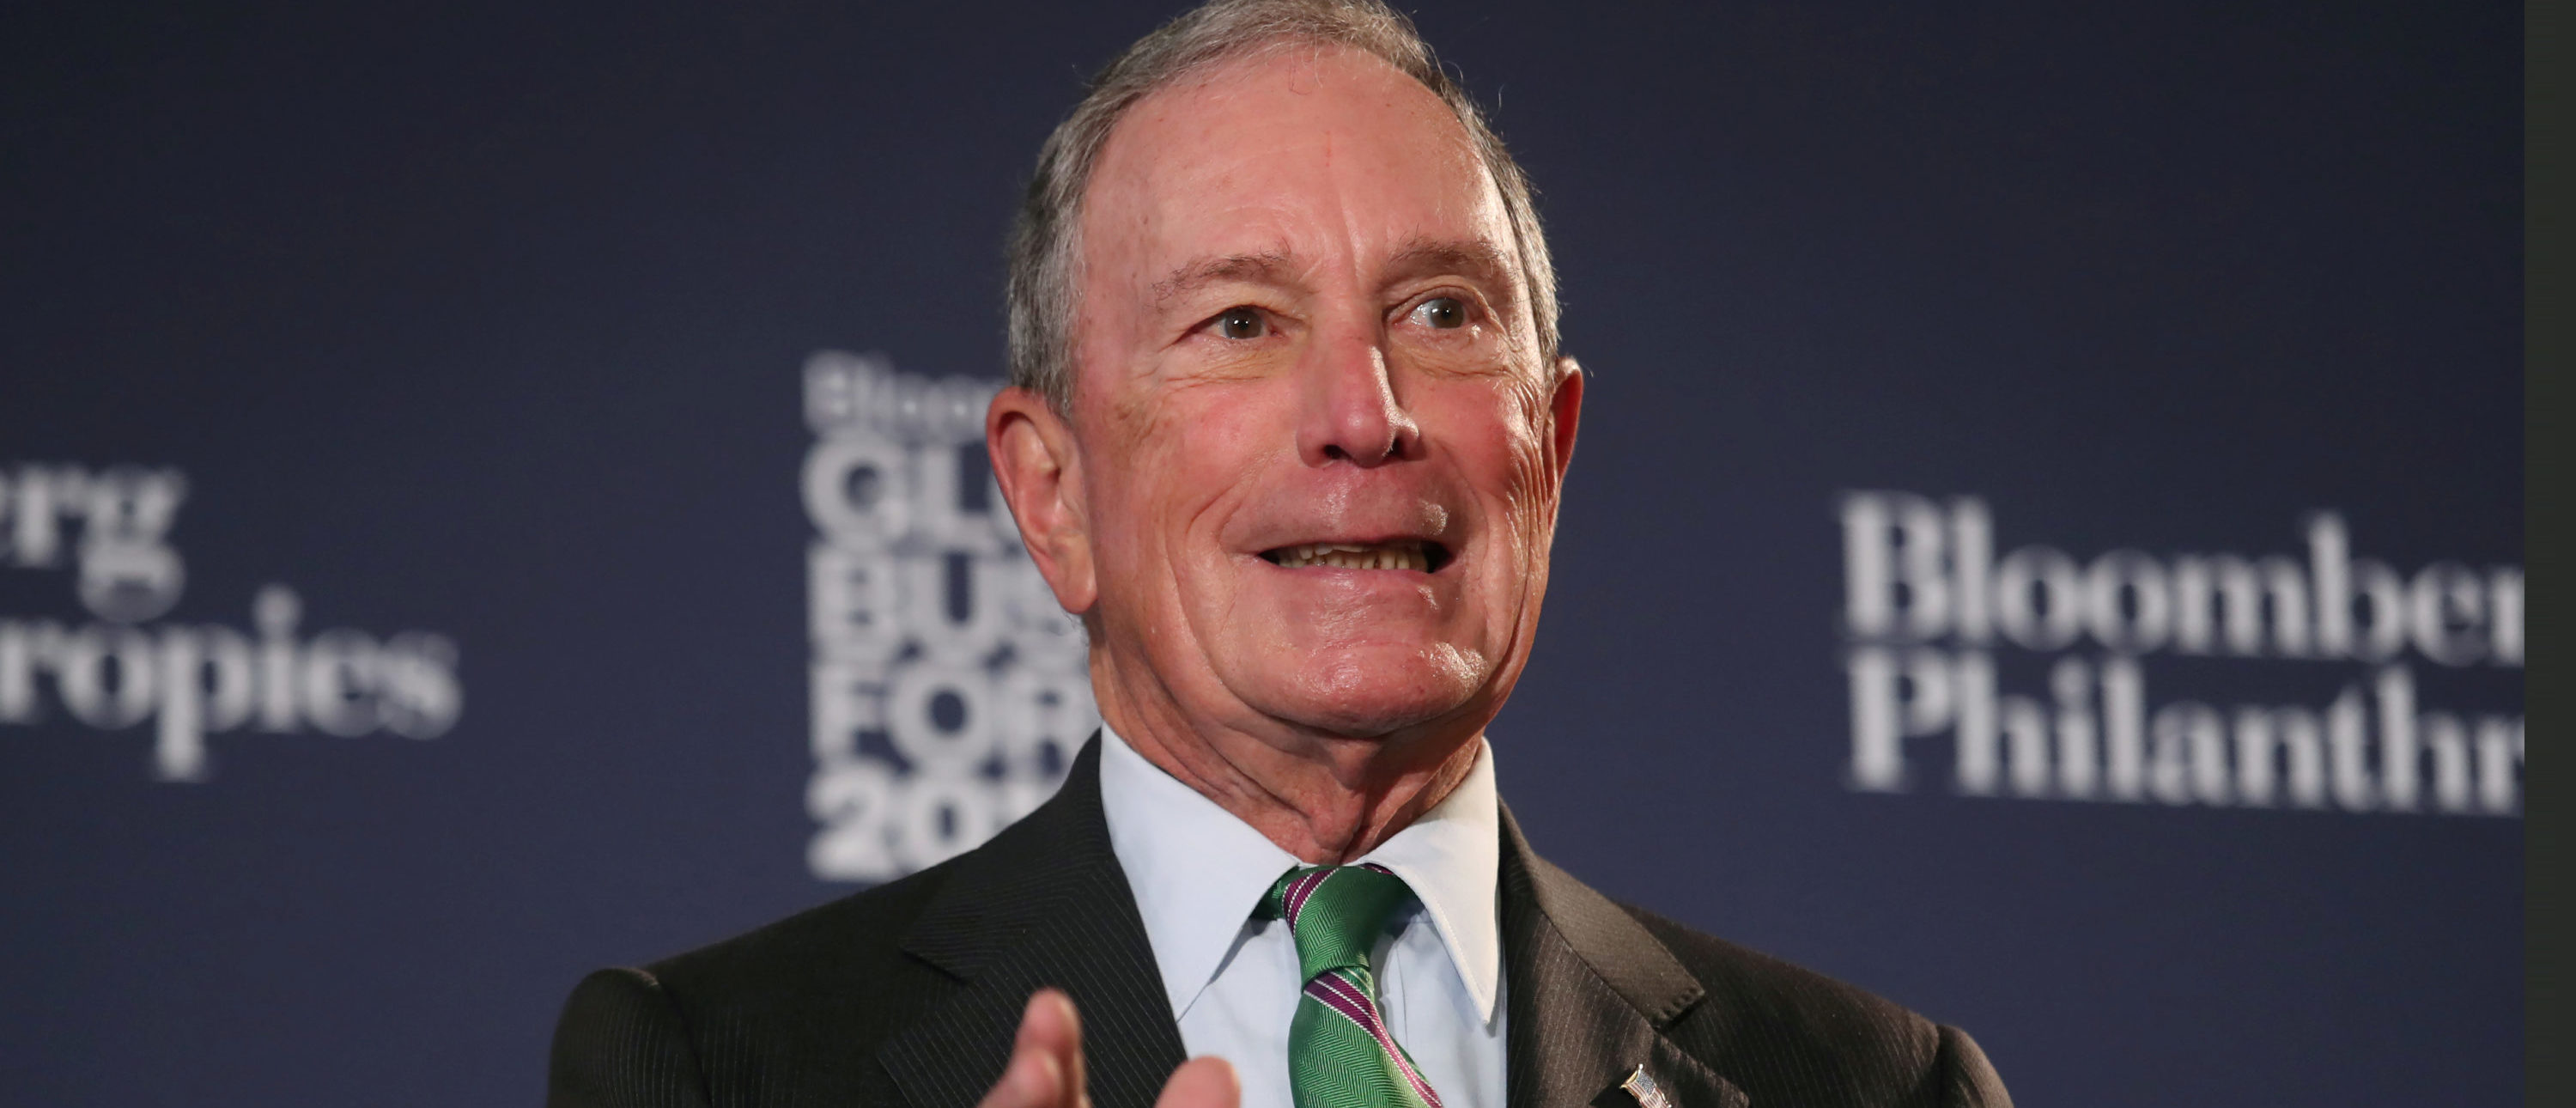 Internal Memo Suggests Bloomberg Wants Biden, Buttigieg And Others To Bail, So He Can Take On Sanders — One On One